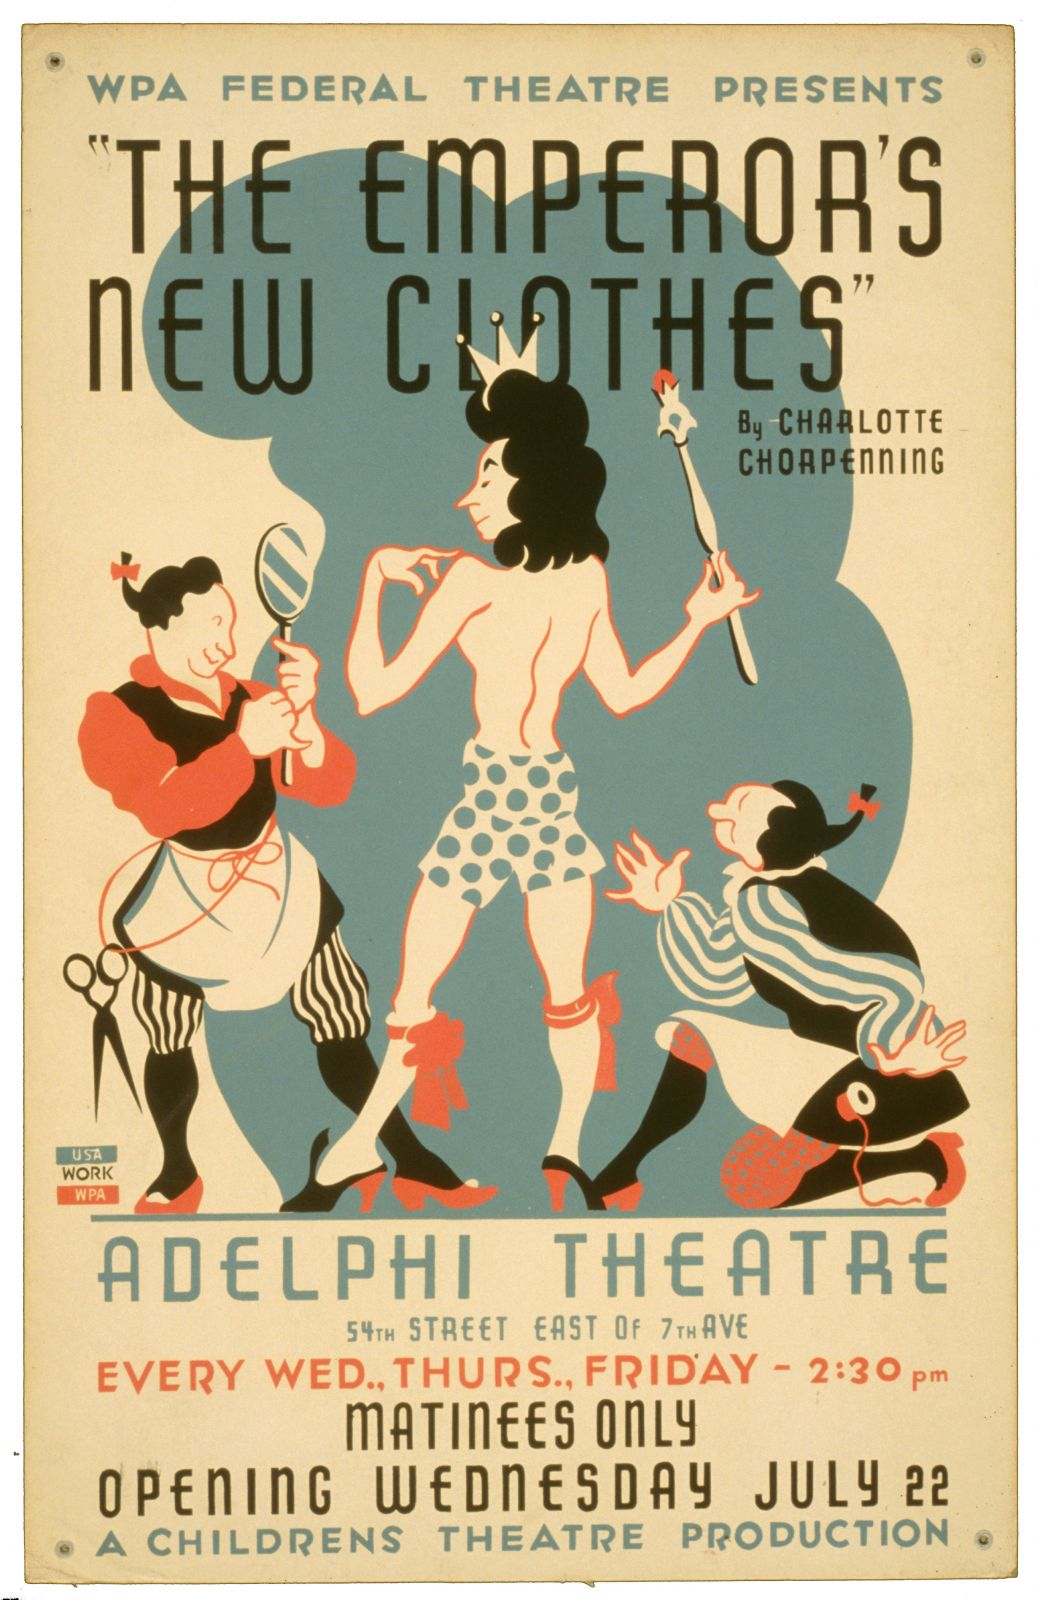 """WPA Federal Theatre presents """"The emperor's new clothes"""" by Charlotte Chorpenning"""